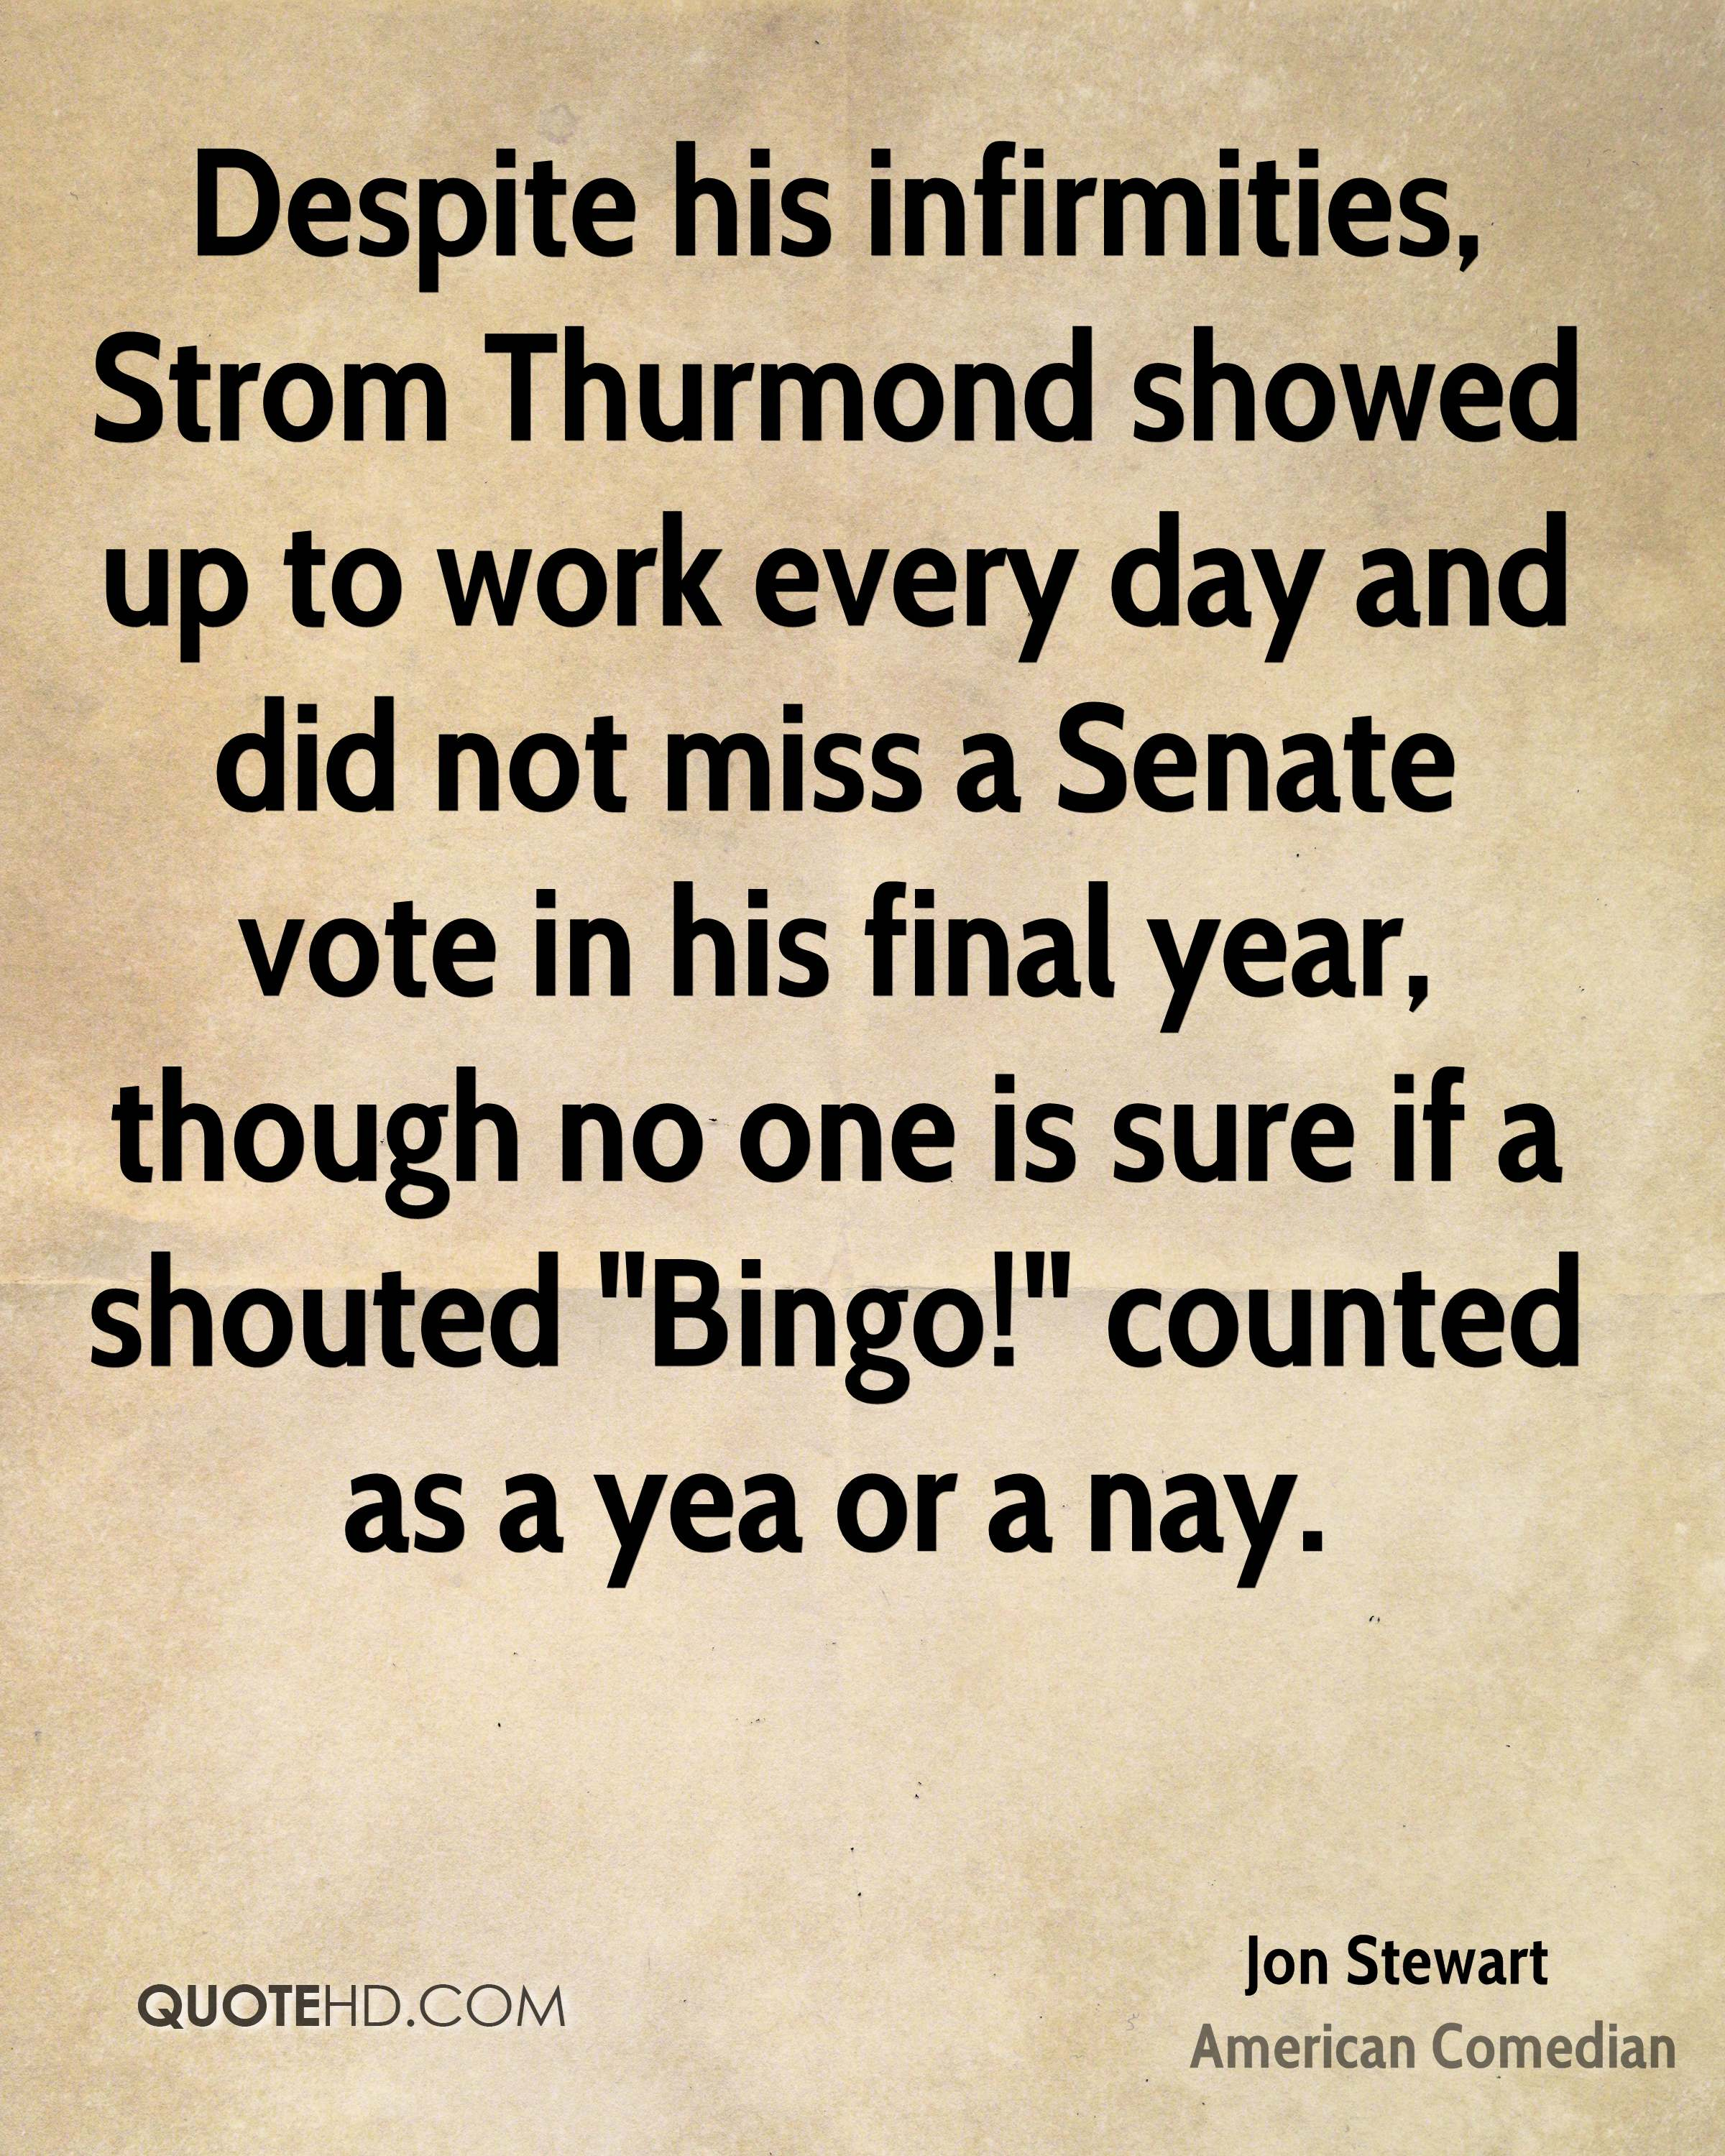 "Despite his infirmities, Strom Thurmond showed up to work every day and did not miss a Senate vote in his final year, though no one is sure if a shouted ""Bingo!"" counted as a yea or a nay."